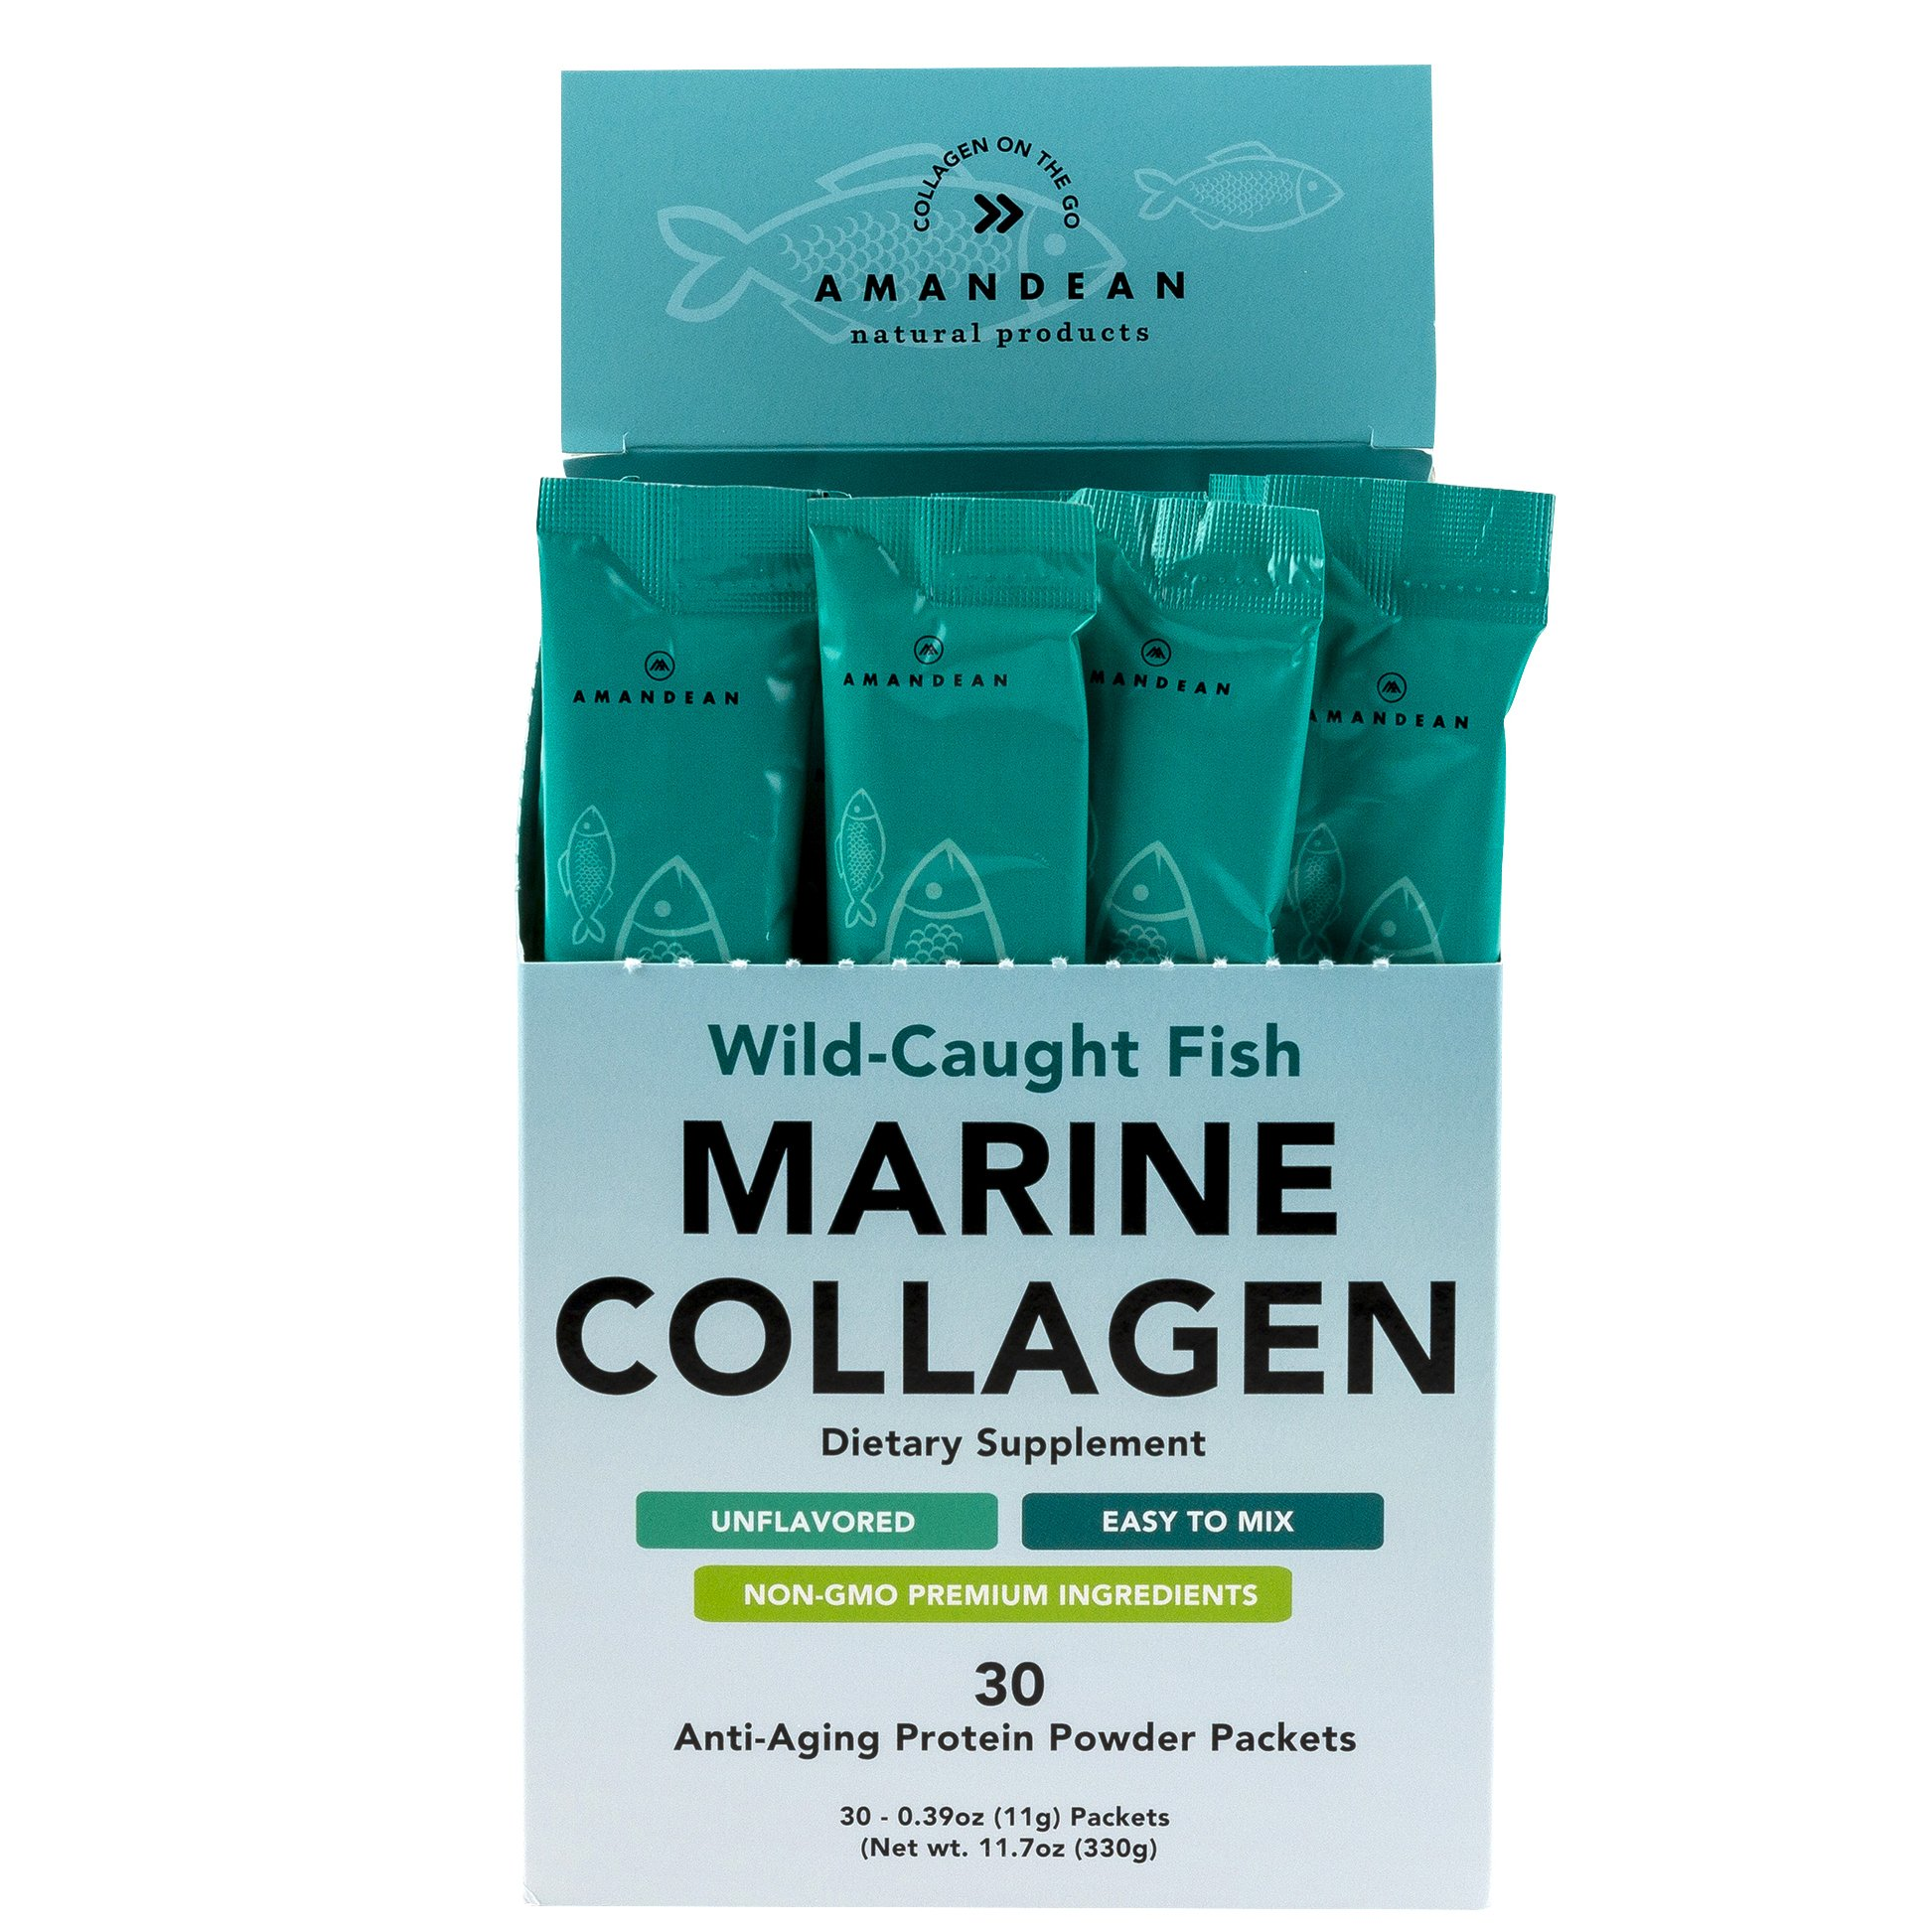 Premium Marine Collagen Peptides Stick Packs   Wild-Caught Fish   30 Single Use Individual Convenience Packets   Anti-Aging, Paleo Friendly, Non-Gmo, Gluten Free, Unflavored   High Bioavailability Mix